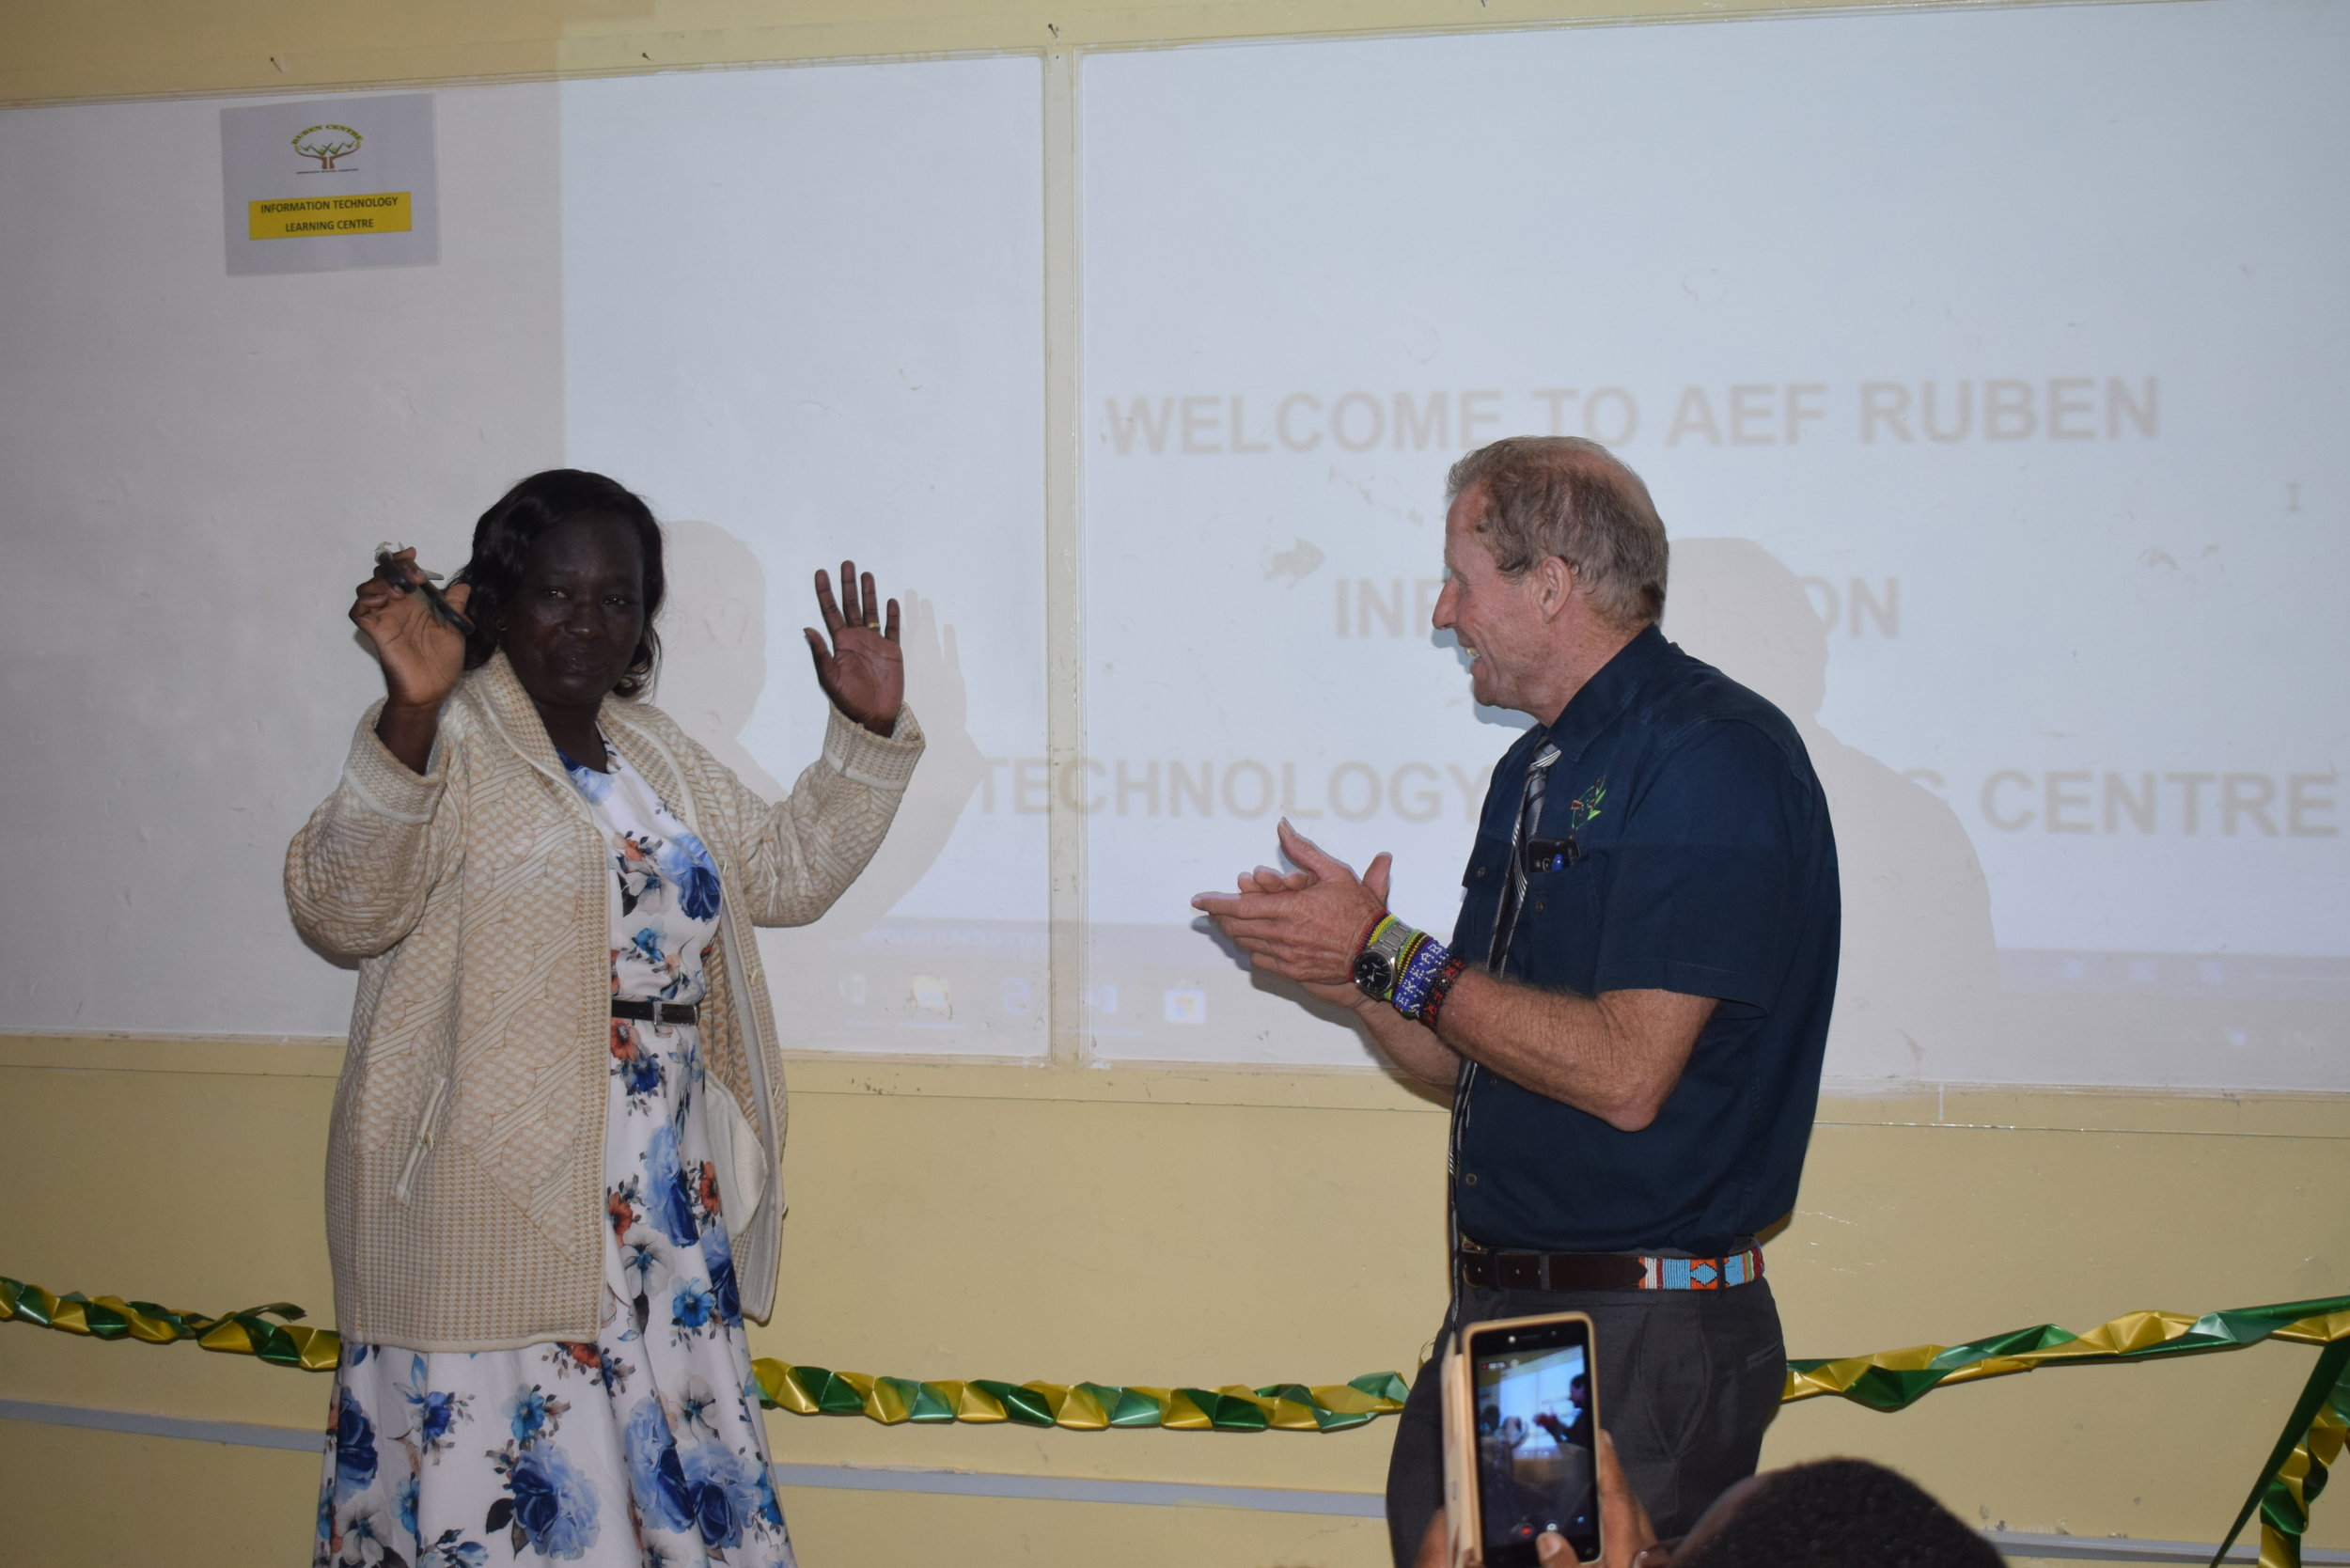 AEF Ruben Primary headteacher Scholastica Opiyo and Centre Director Br. Frank O'Shea during the launch of the new ICT room at the school.